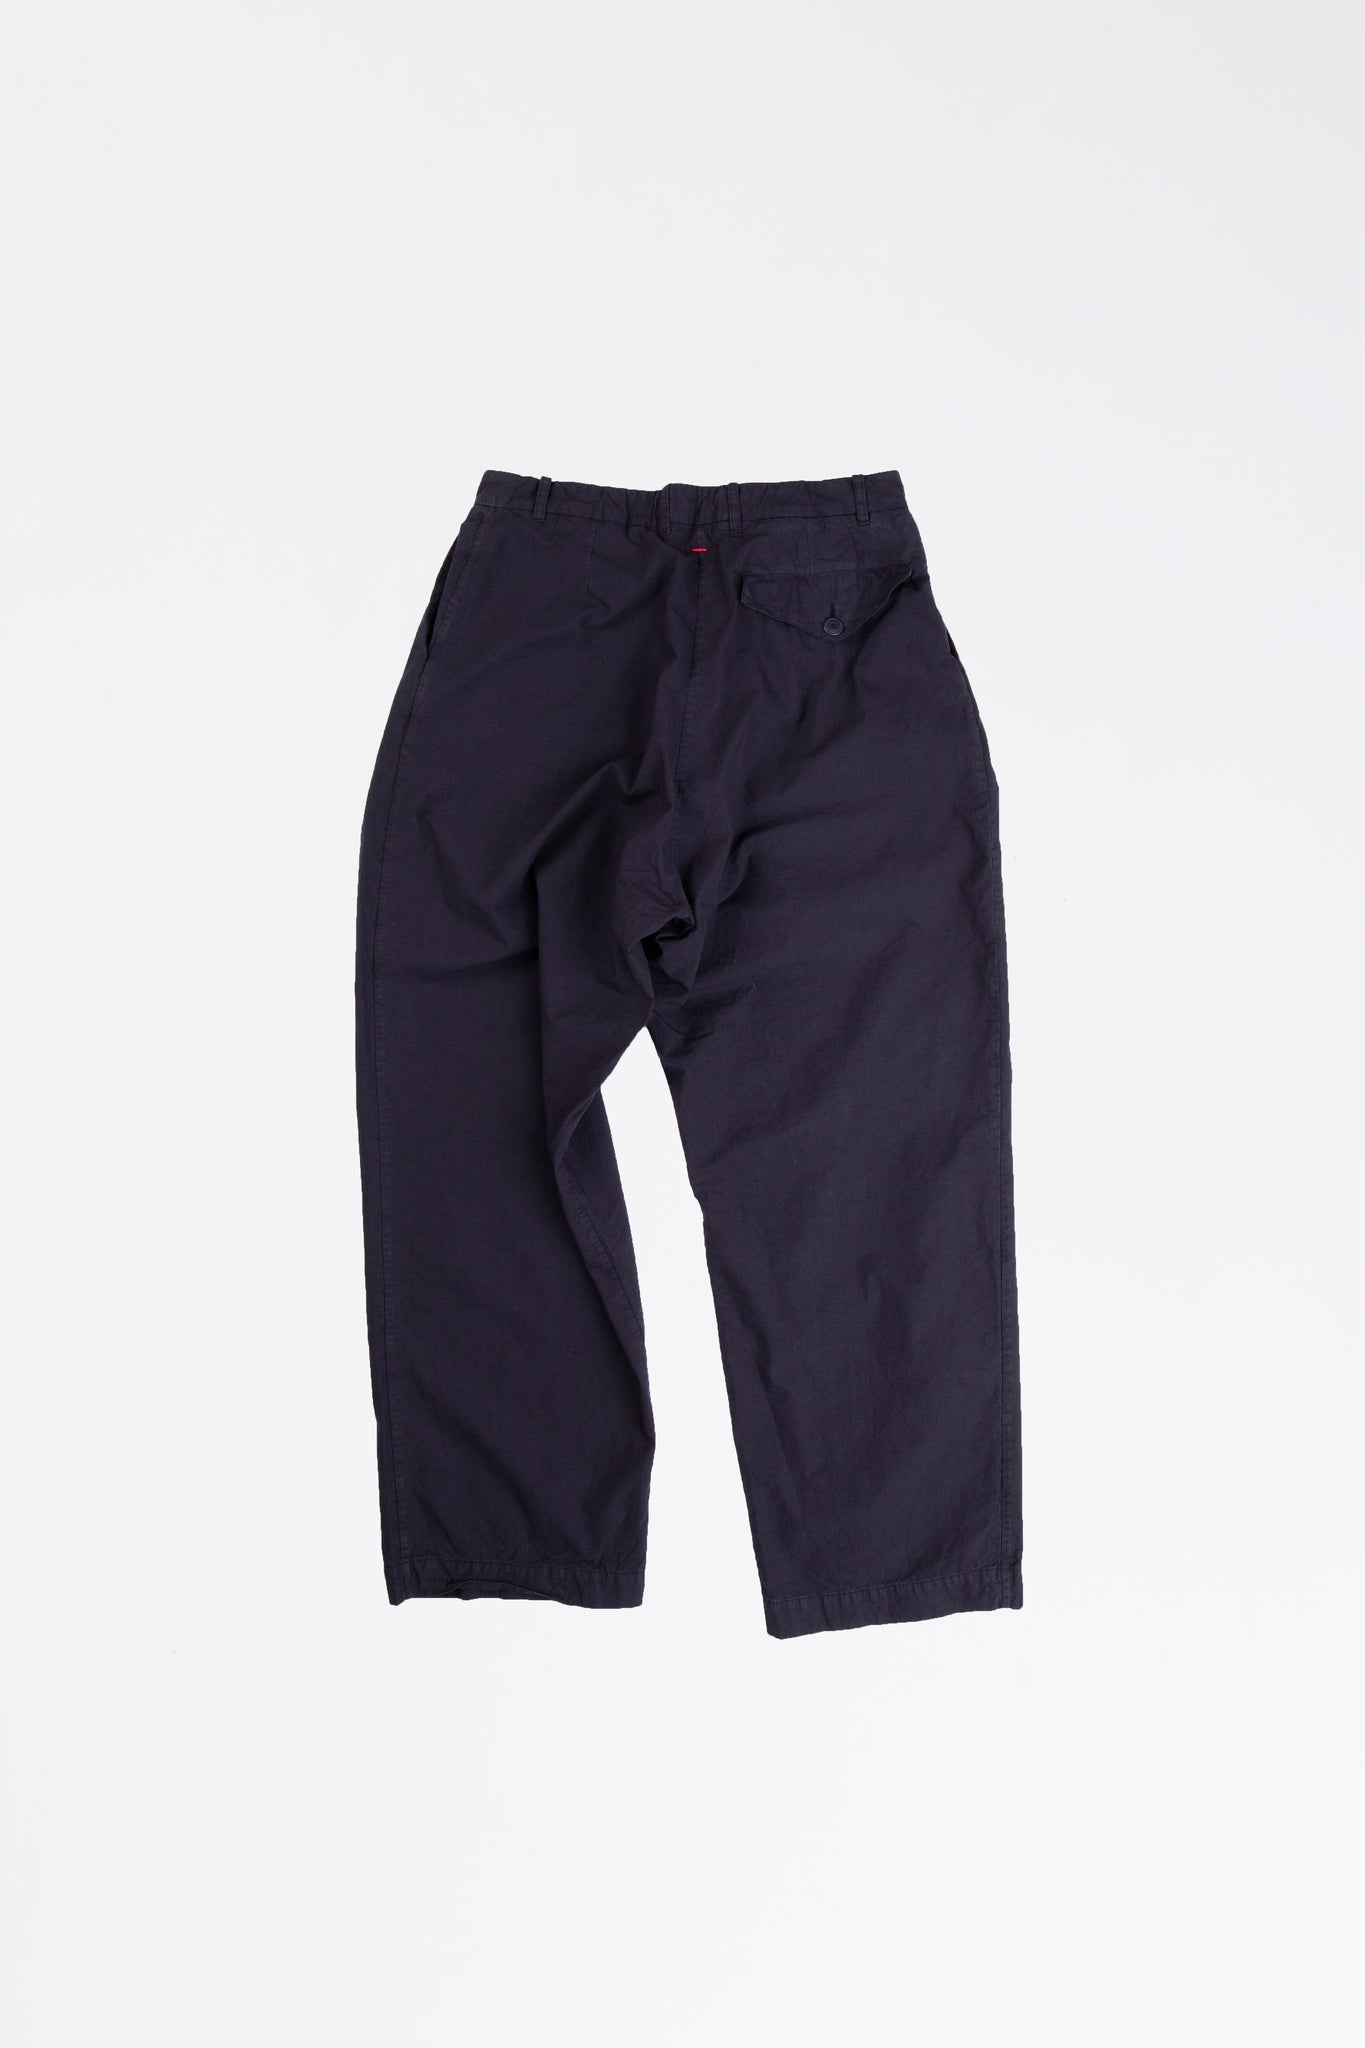 Casey Casey Trousers